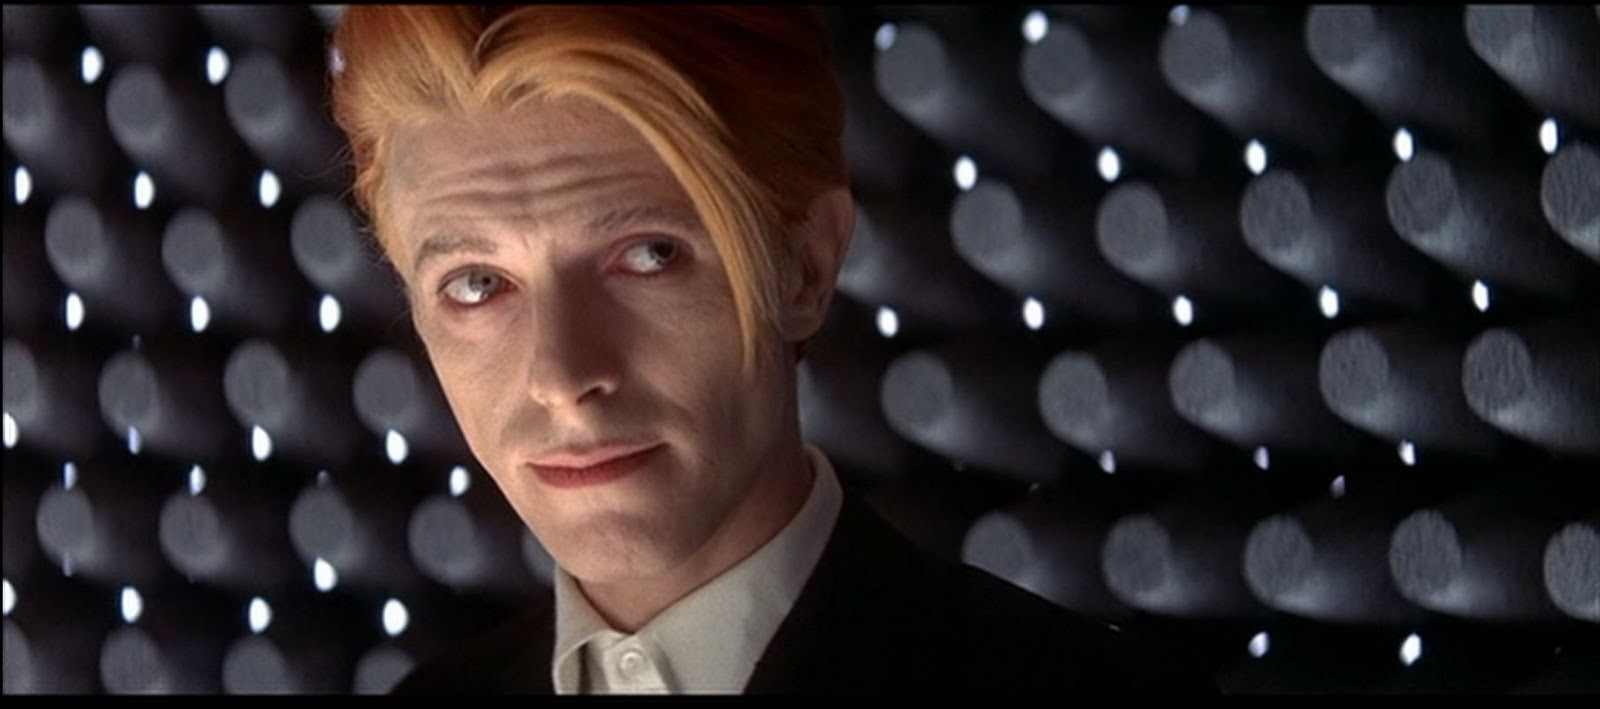 David Bowie in THE MAN WHO FELL TO EARTH (1976). British Lion Film Corporation / Cinema 5